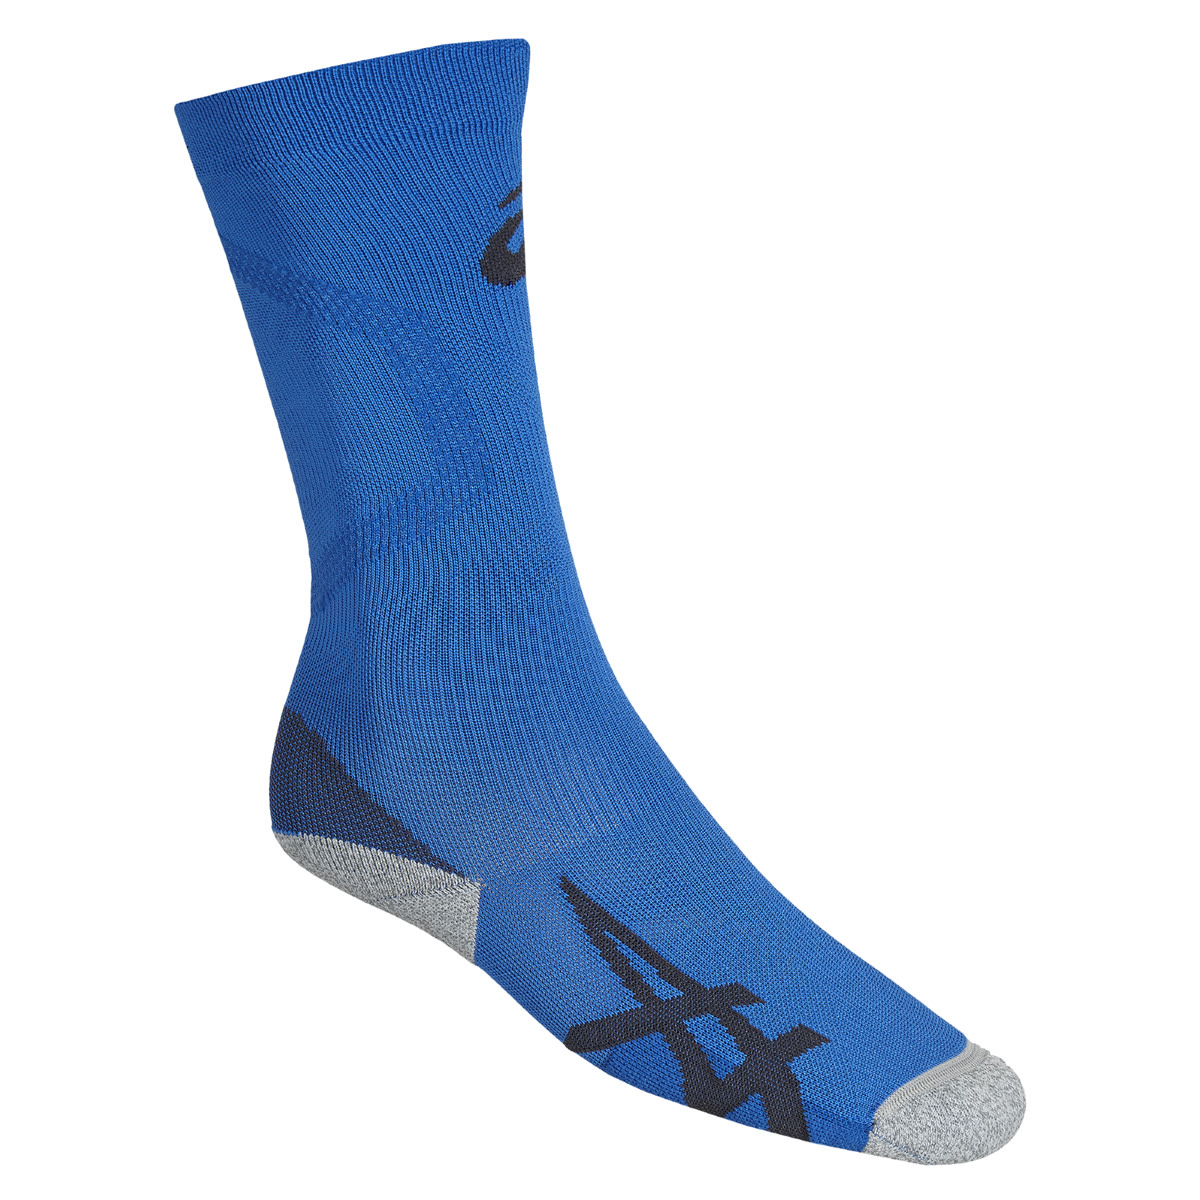 0a9553f83895 ASICS Compression Sock - Running socks - Blue